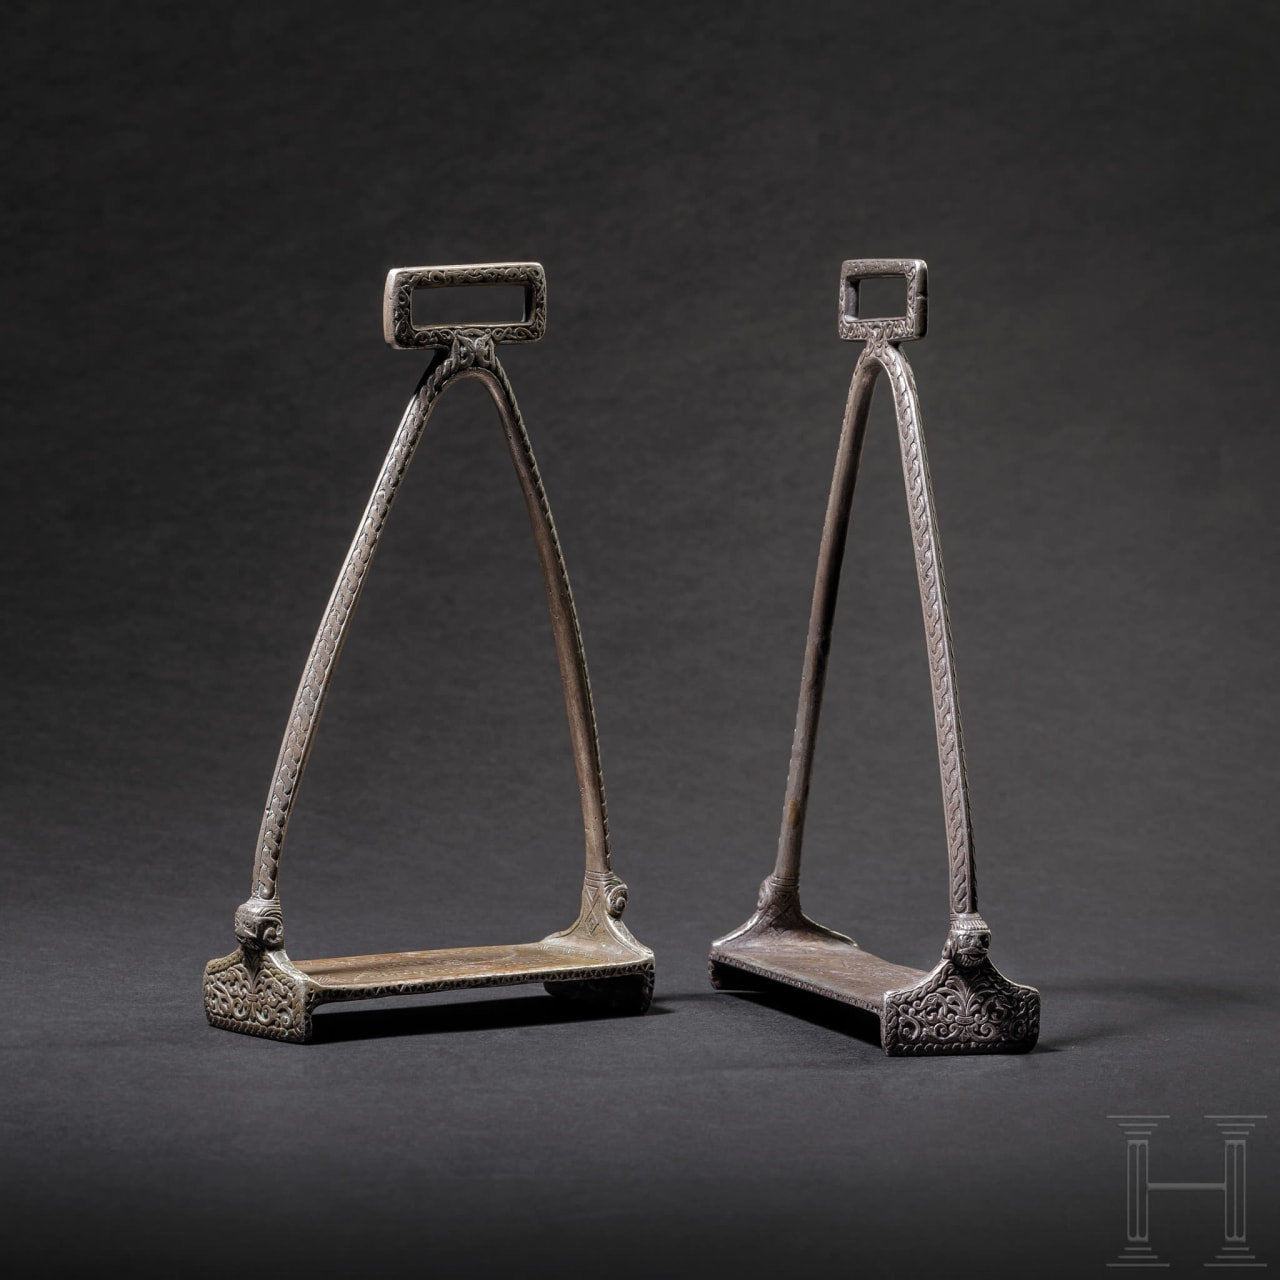 A pair of northern or eastern European silver Viking stirrups, circa 11th century